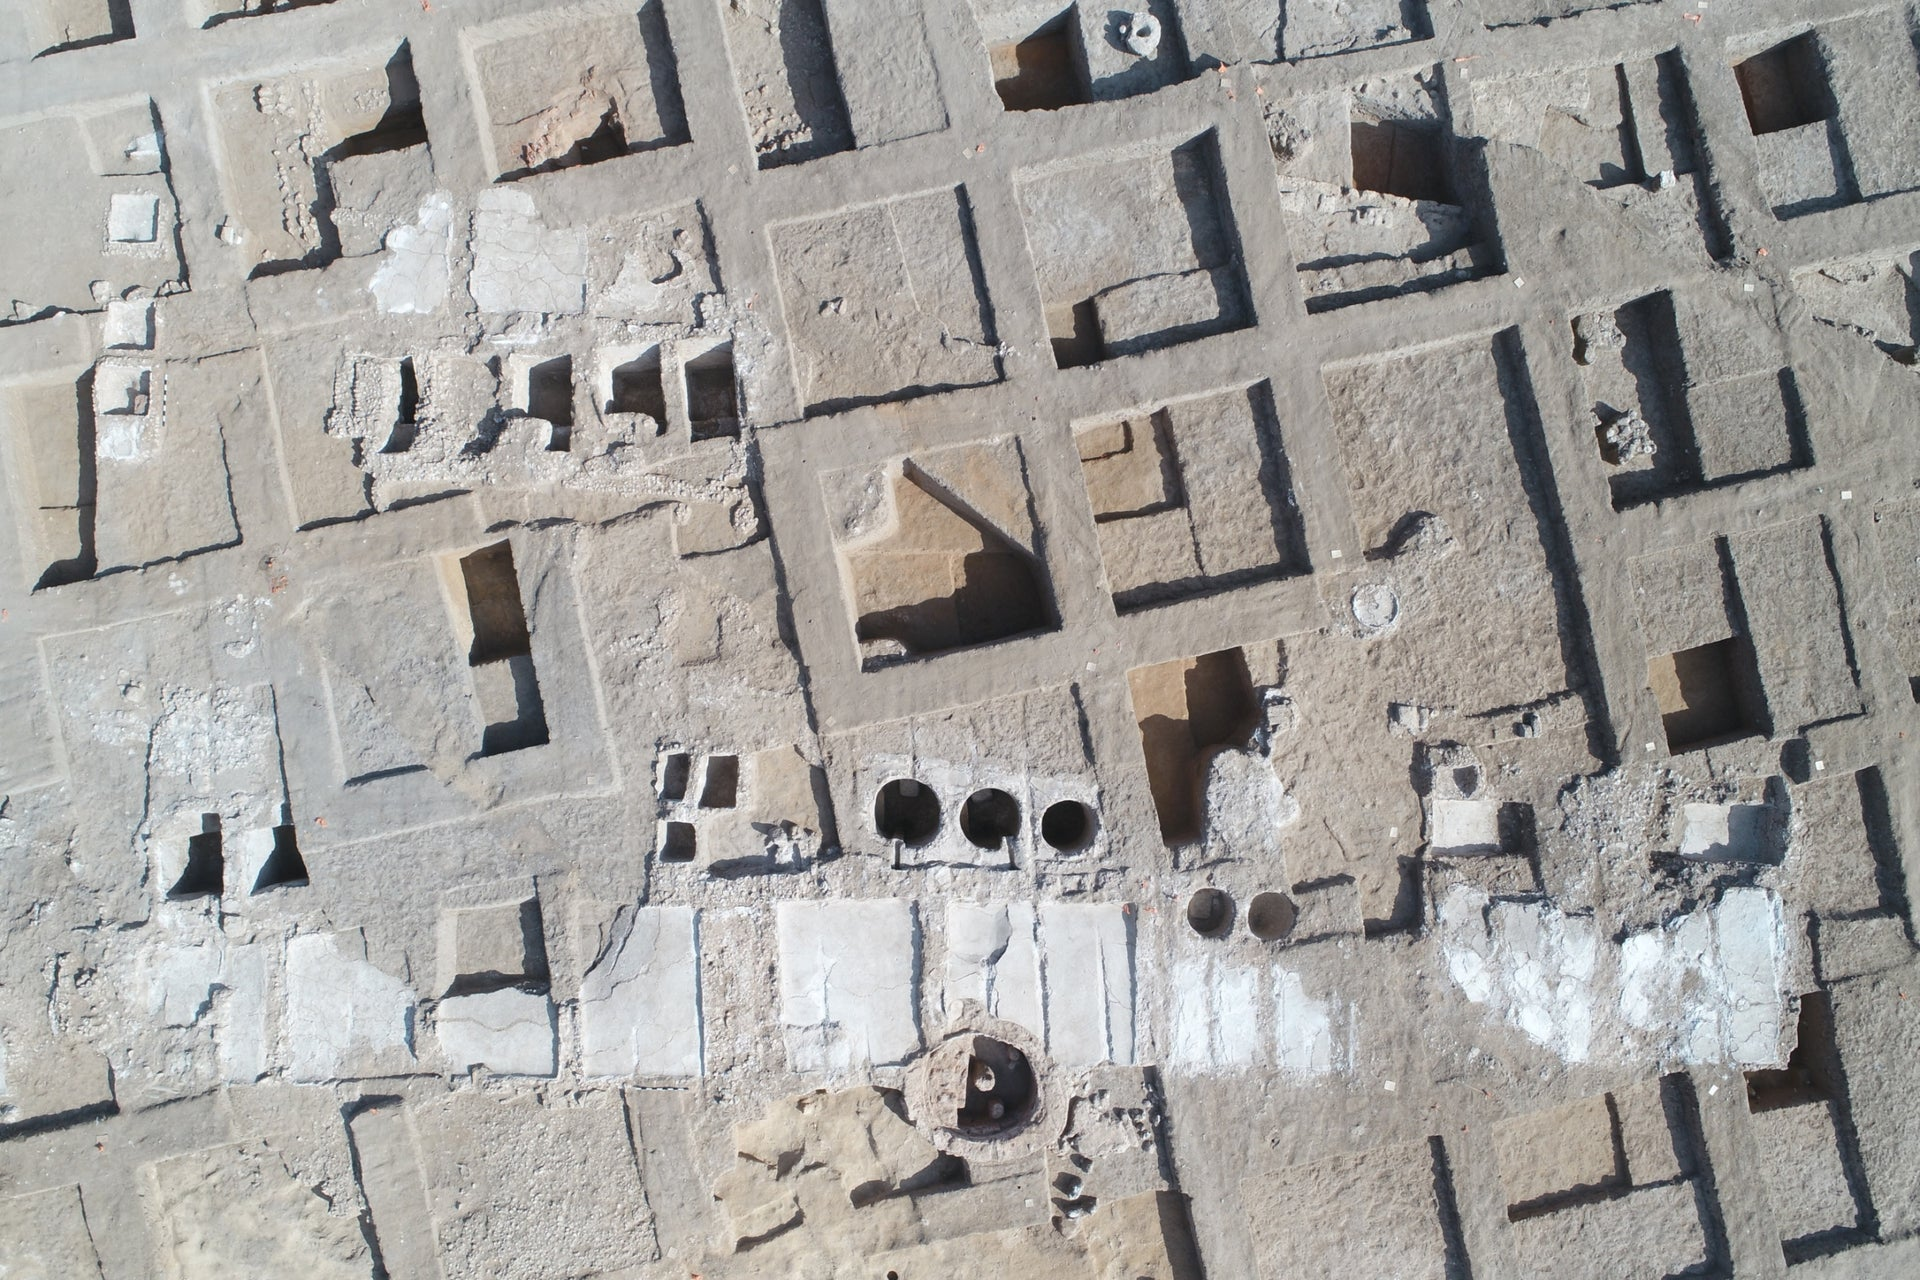 Aeriel image of ancient Yavneh and its industrial winery